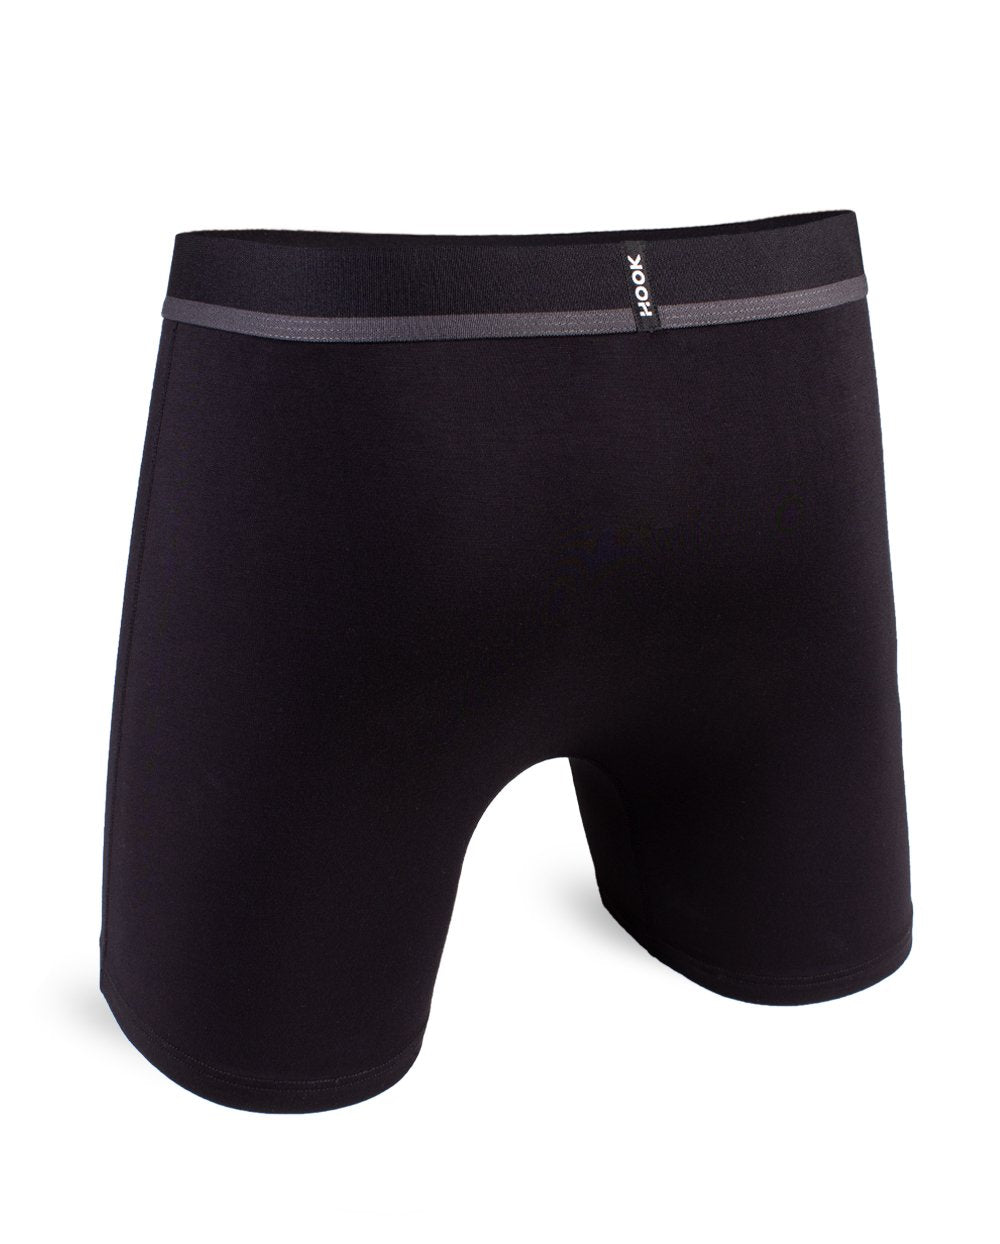 Feel Solid All Black Boxer Brief